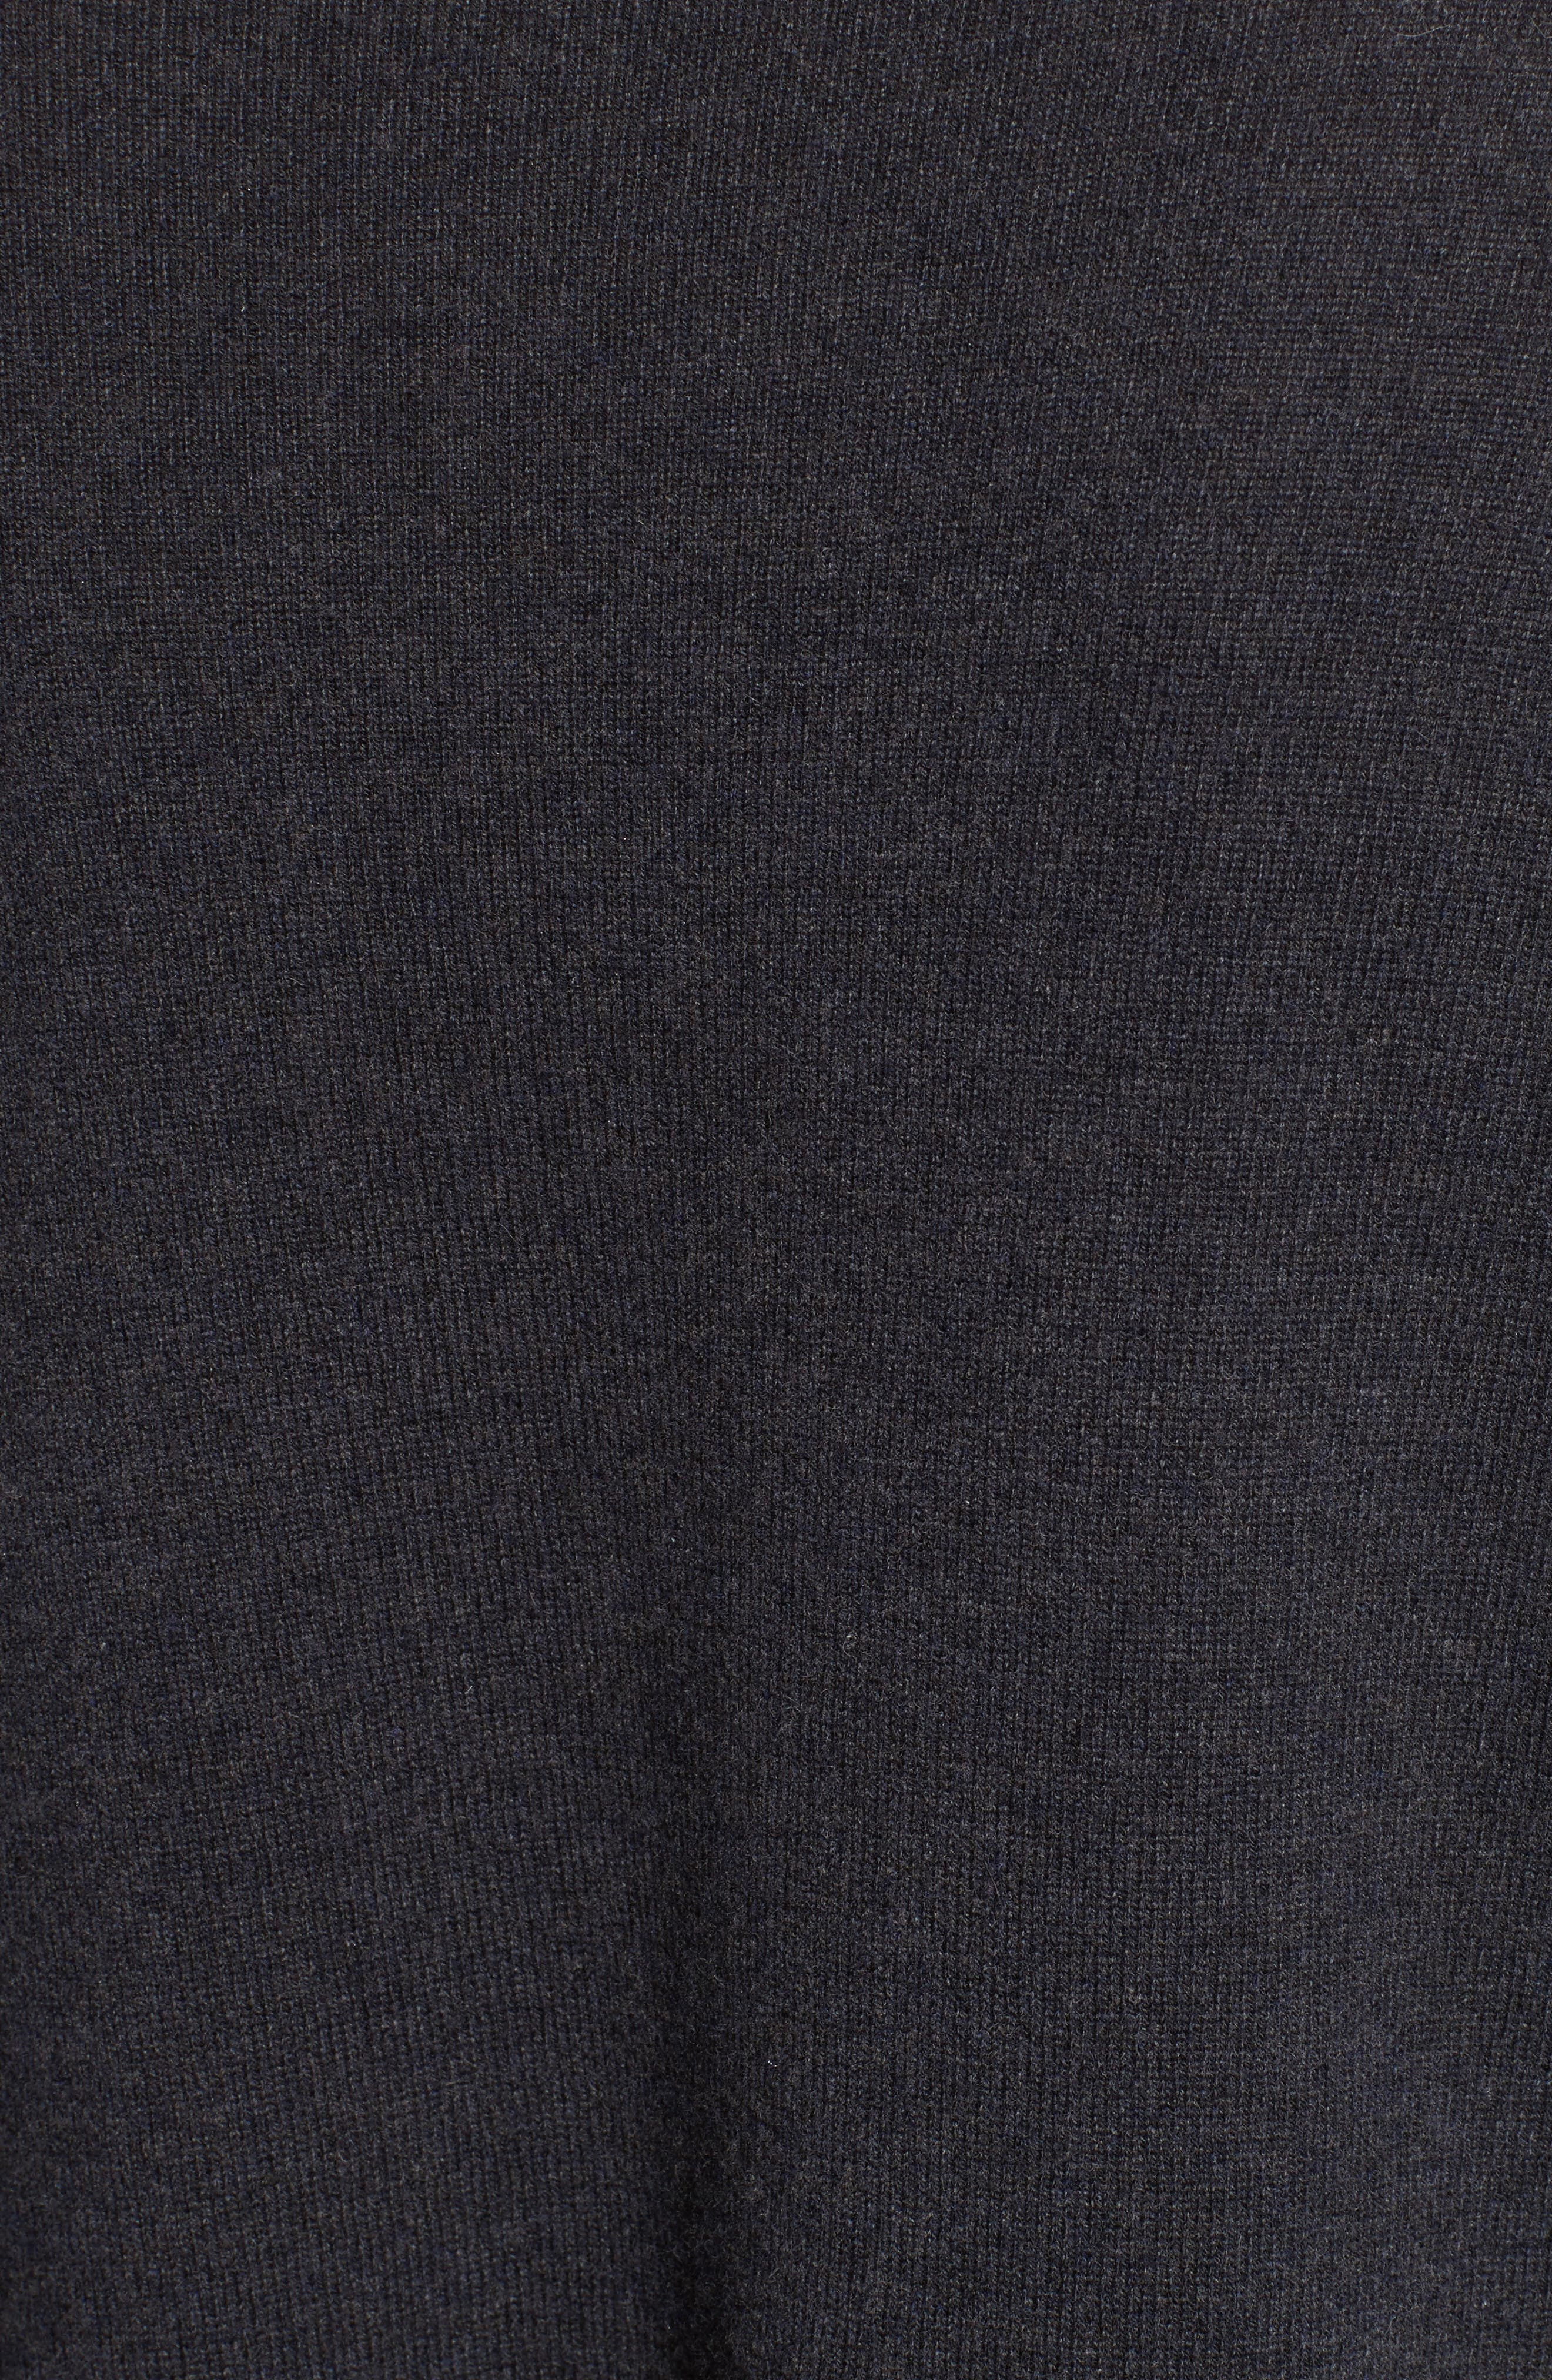 Wool, Silk & Cashmere Boatneck Sweater,                             Alternate thumbnail 3, color,                             Charcoal Navy